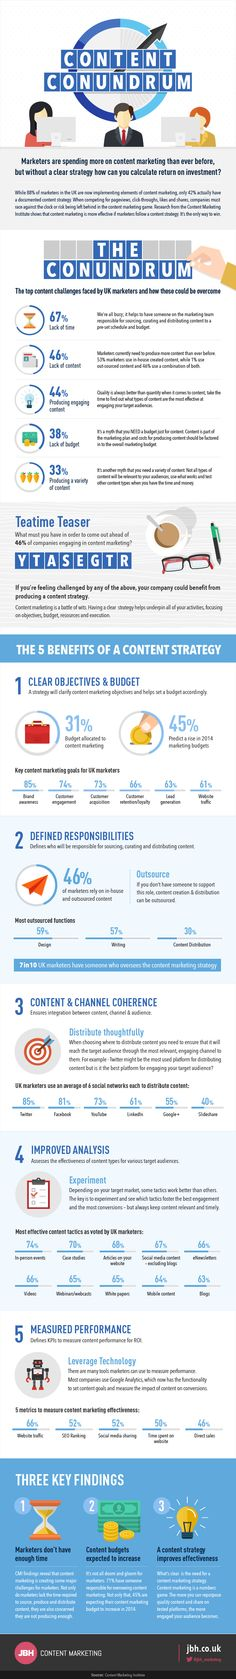 Content Conundrum about Content Marketing ROI [Infographic]